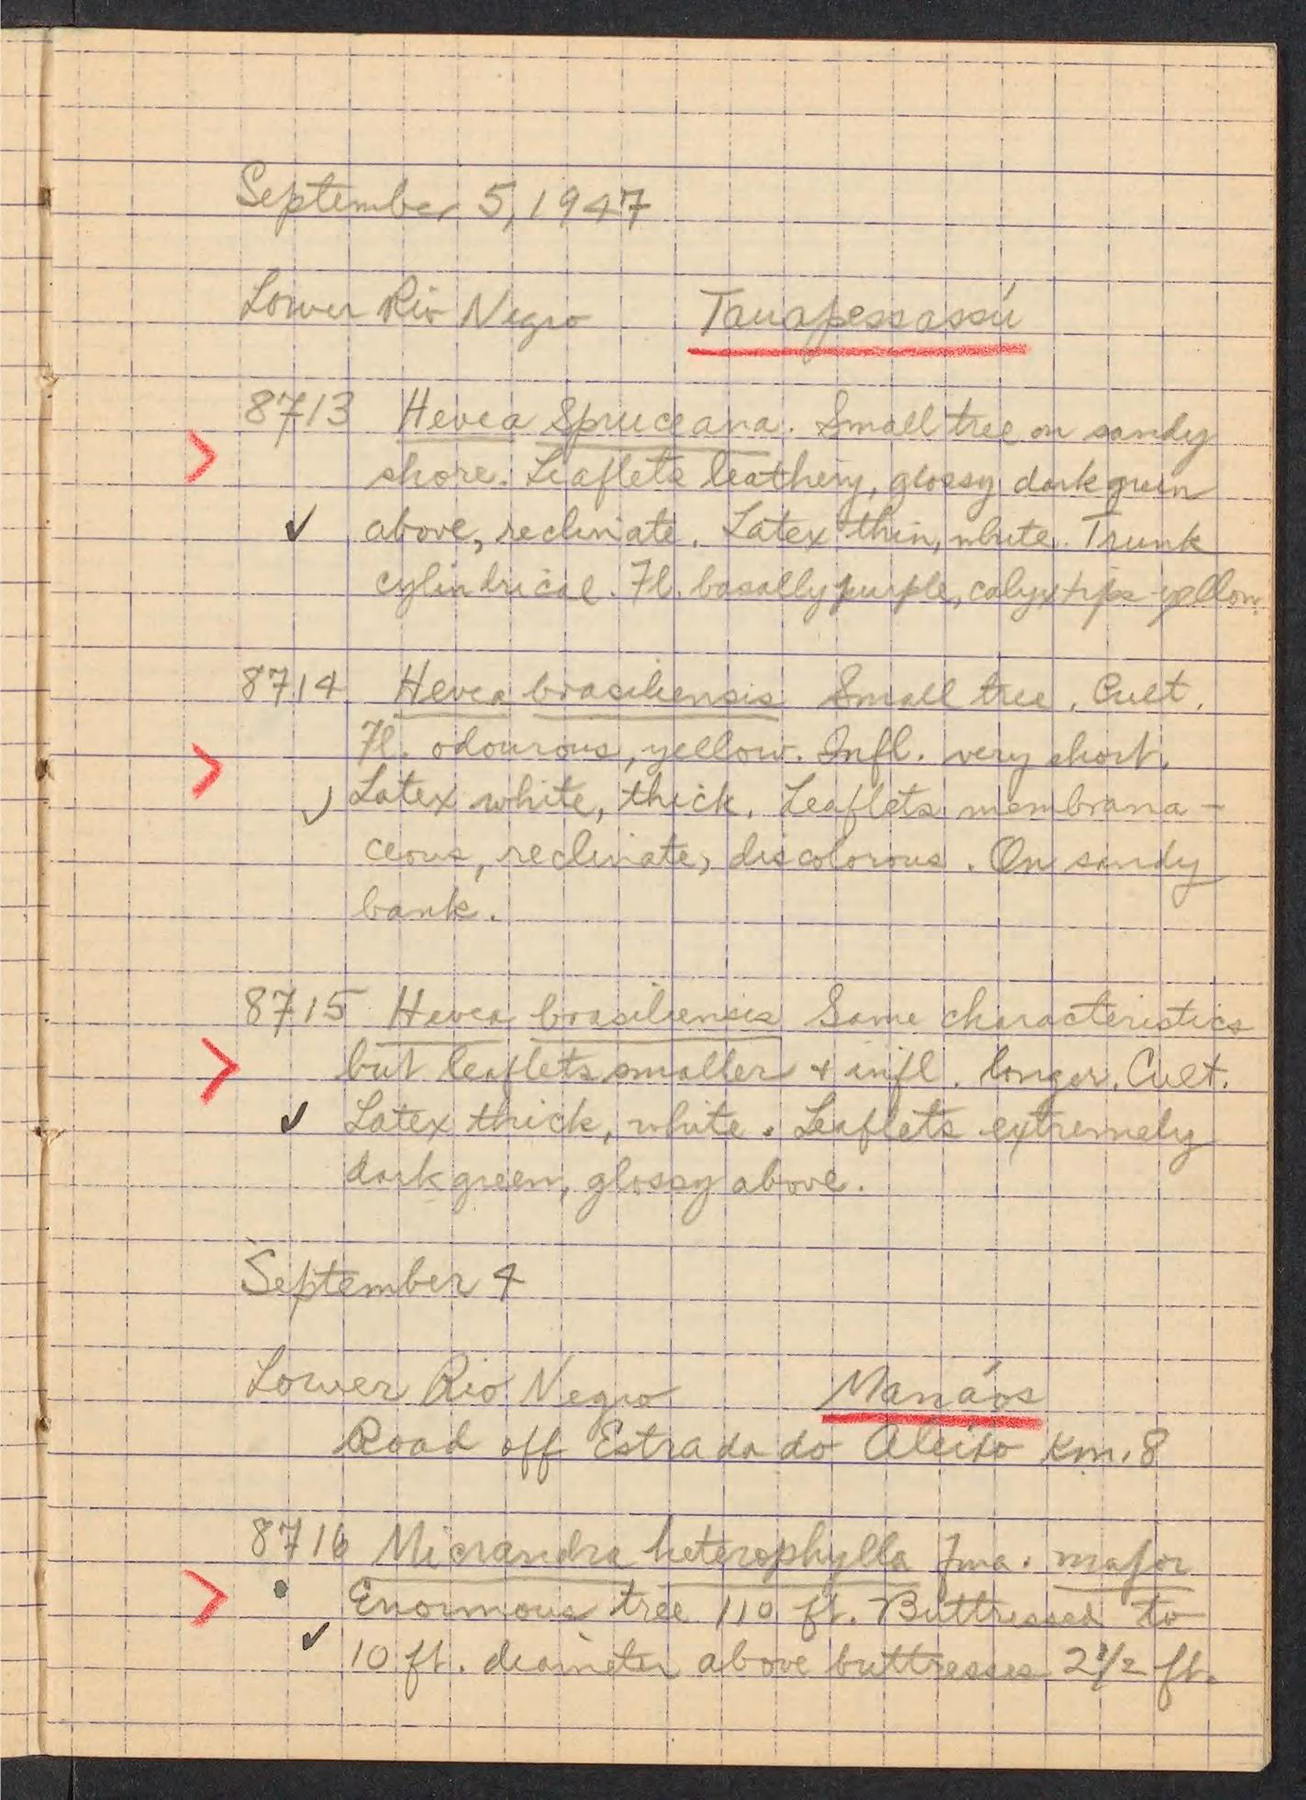 page from a handwritten notebook